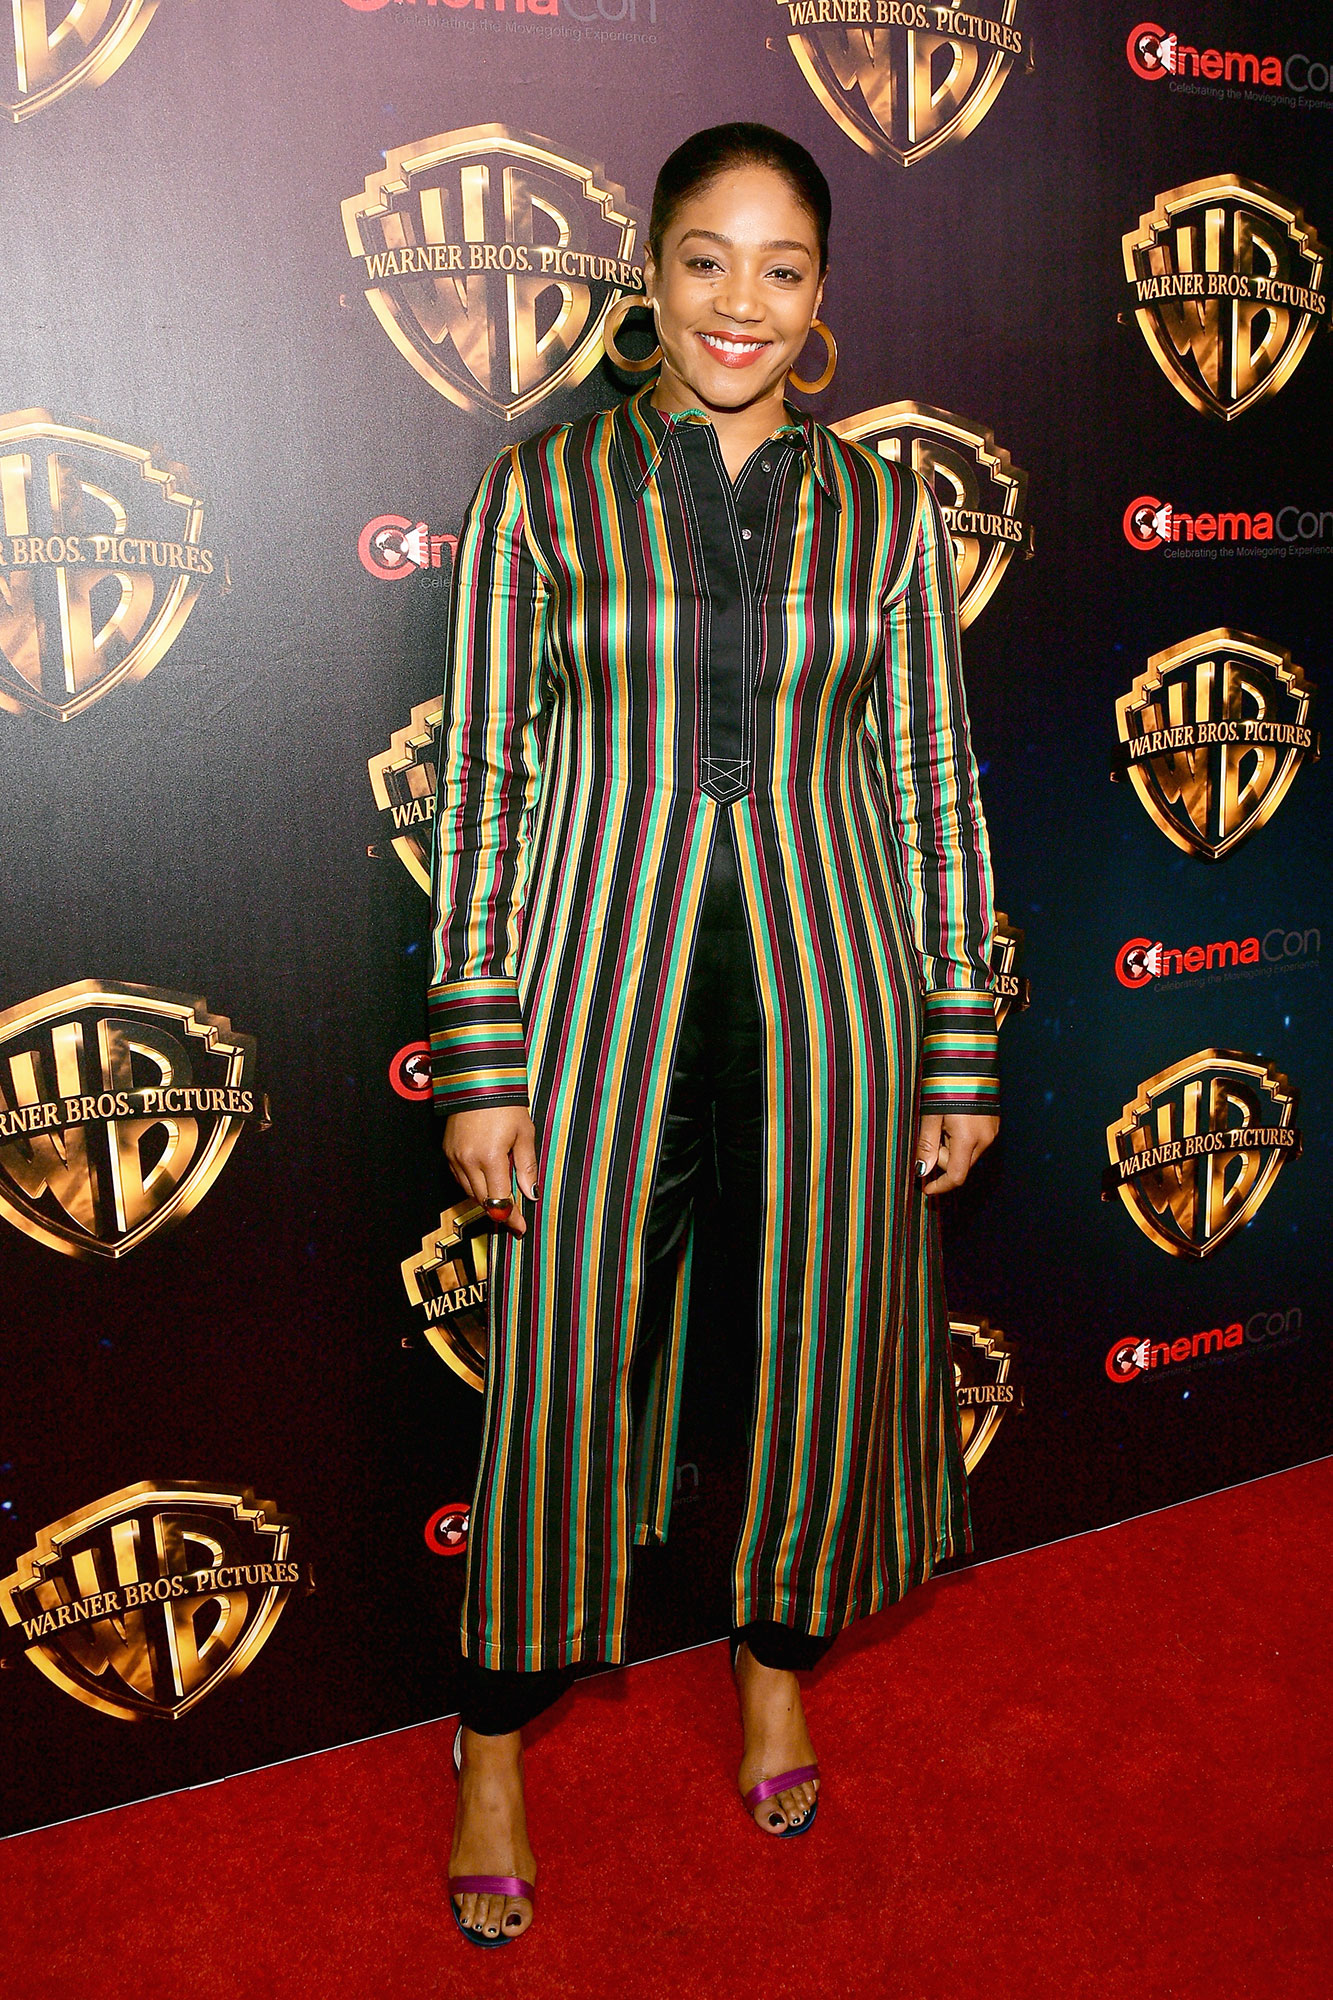 Tiffany Haddish The Stars Are Bringing Their Style A-Game to CinemaCon - The funny lady showed her stripes in a multi-colored tunic and hot pink sandals on Tuesday, April 2.